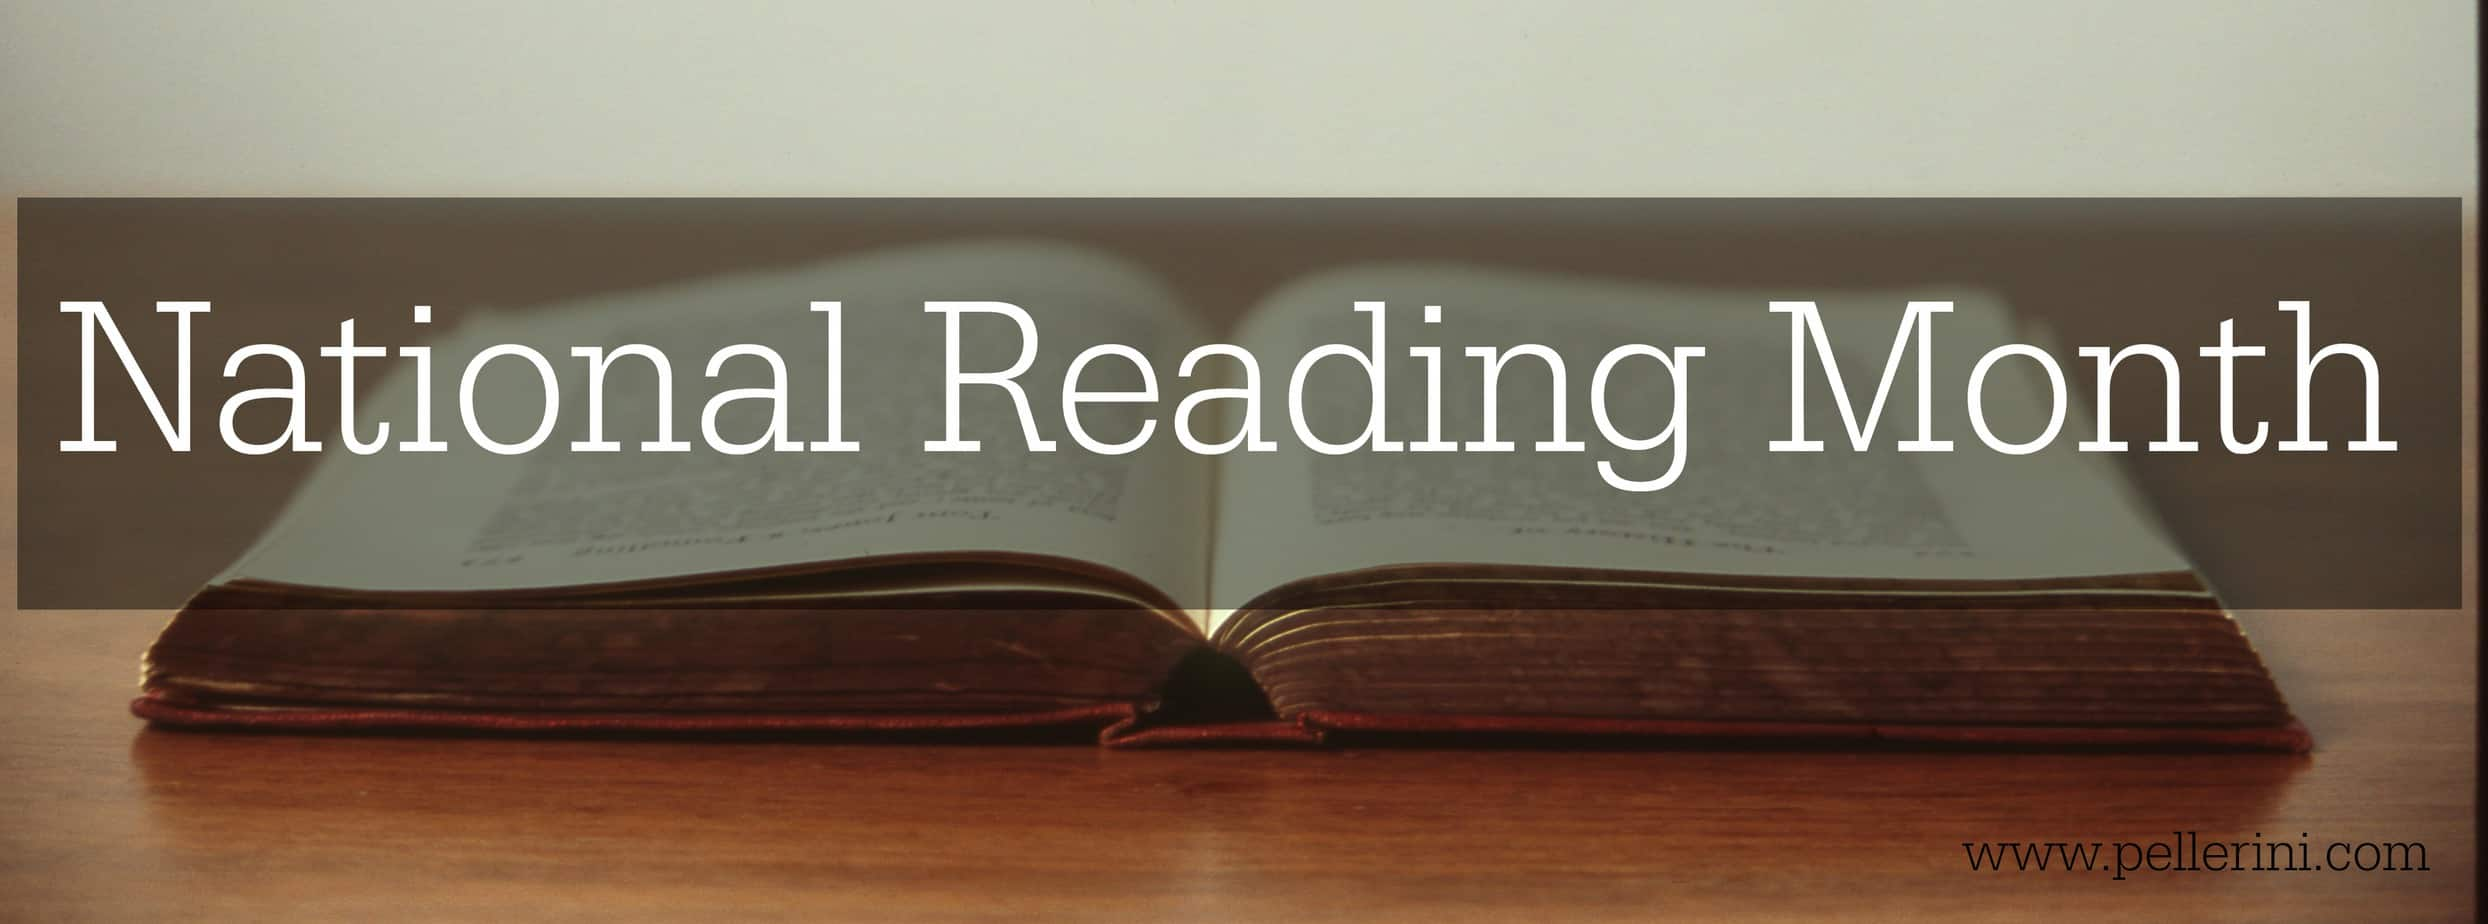 Let's Discuss National Reading Month